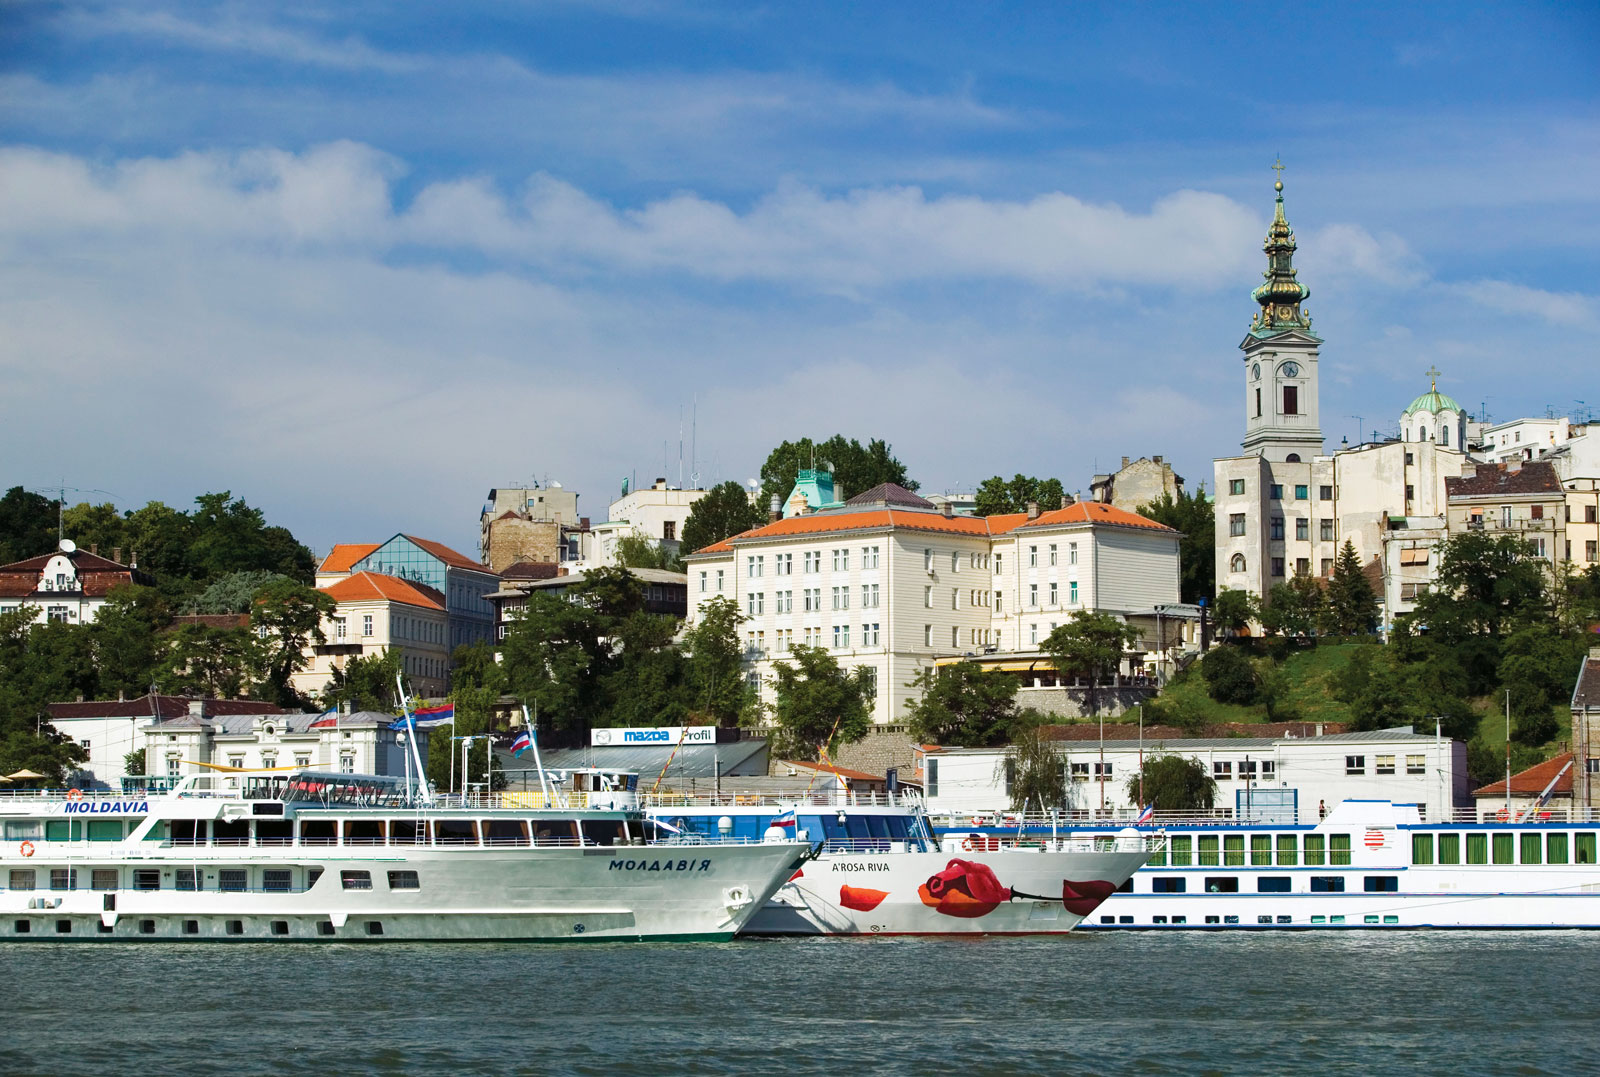 Belgrade across the Danube. Image credit not found. TravelSeeLove.com does not claim any rights whatsoever to this image.